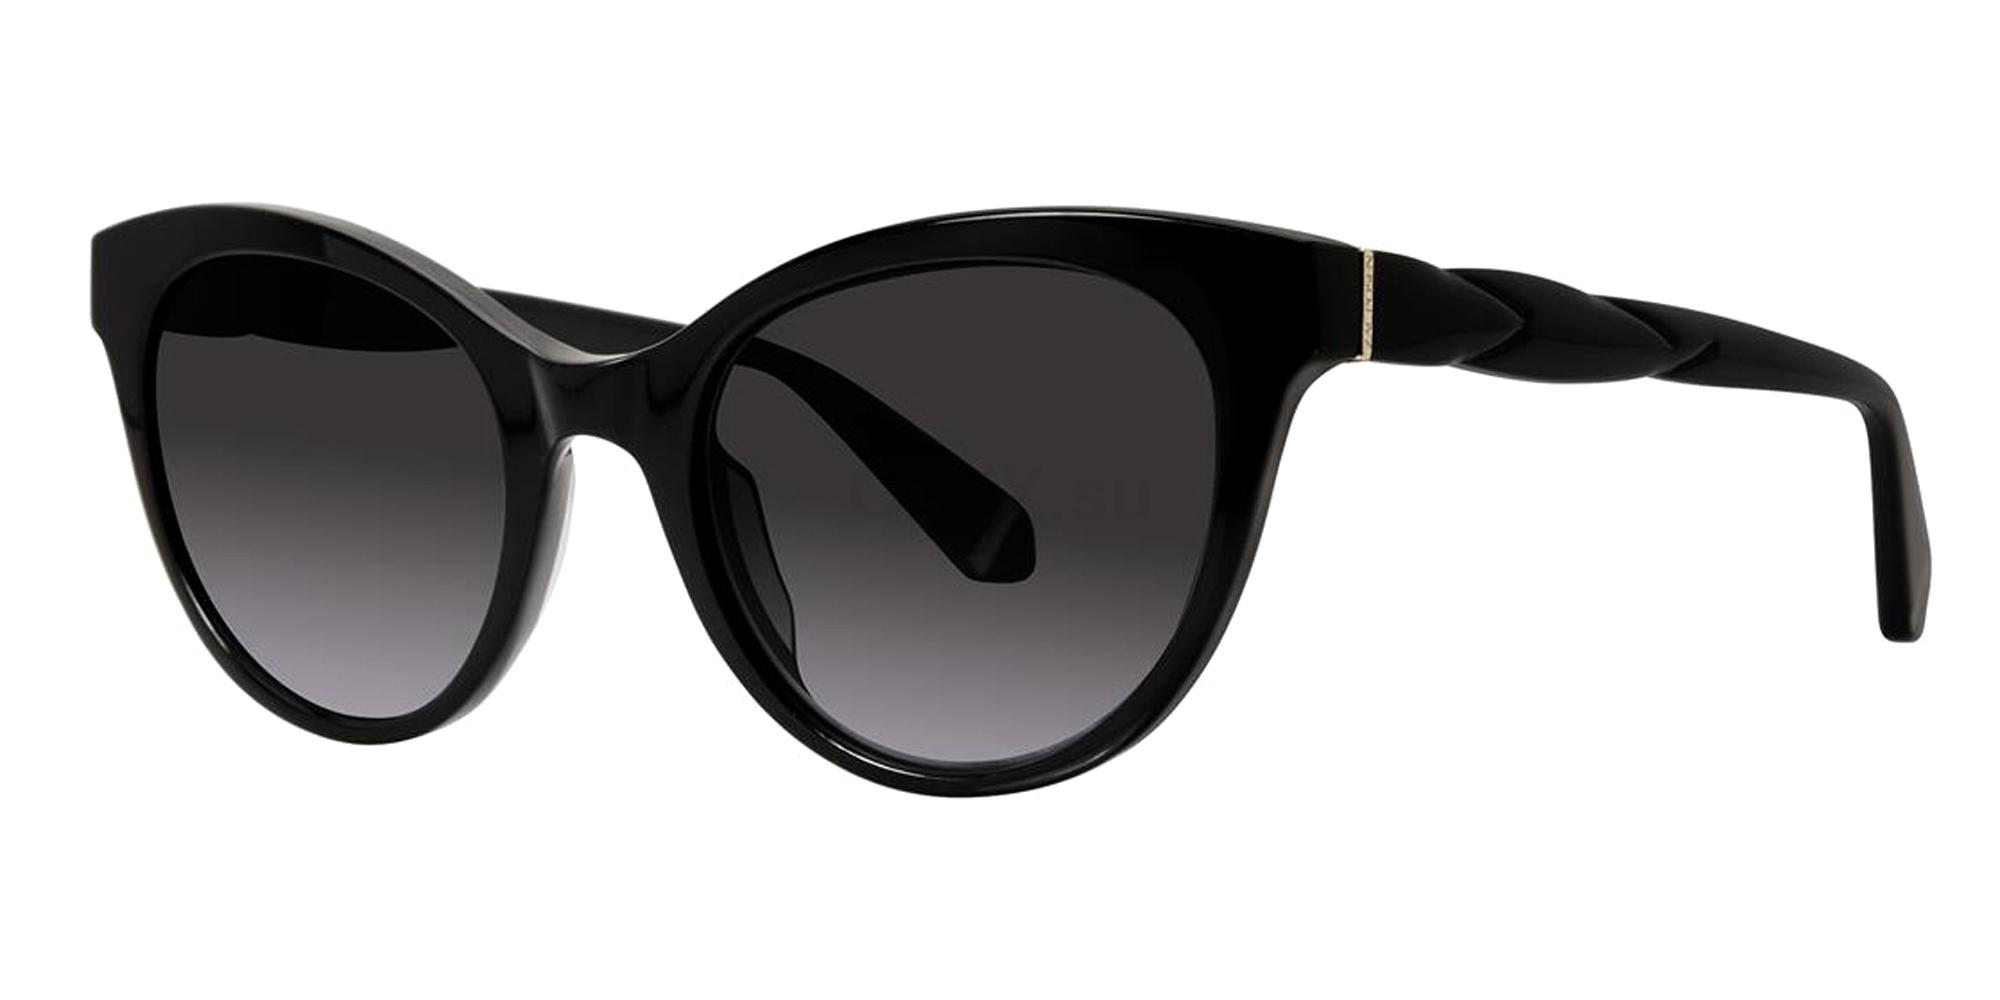 Black ZAIDA SUN Sunglasses, Zac Posen